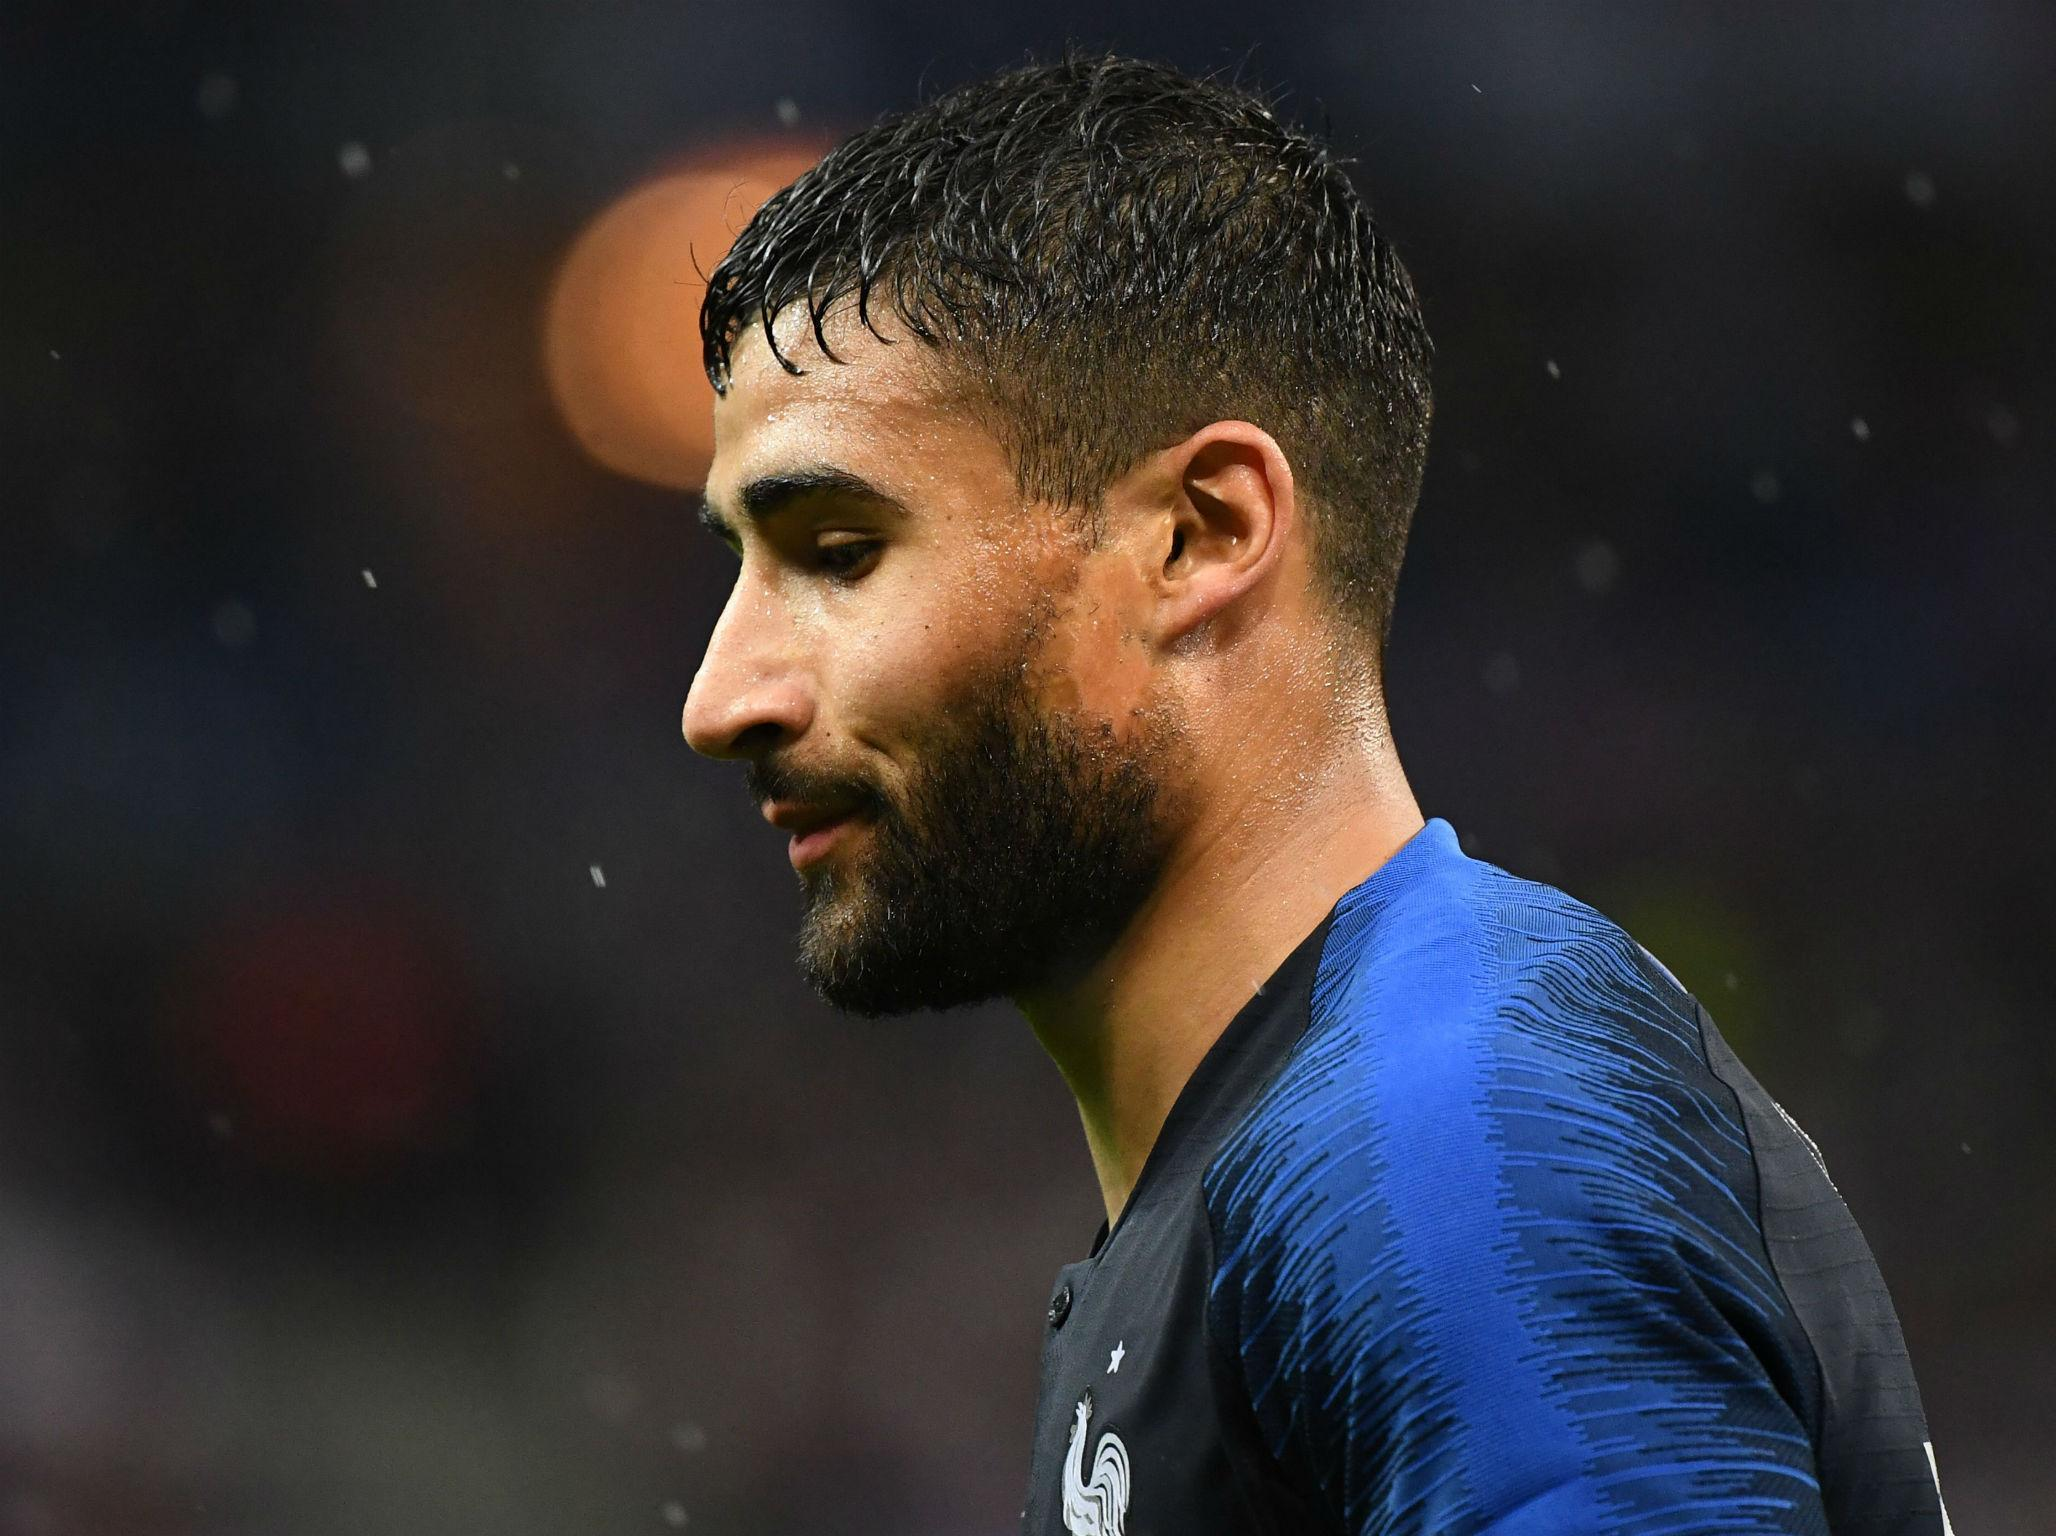 Transfer news - LIVE updates: Liverpool's Nabil Fekir move off, Manchester United target to decide after World Cup, plus Arsenal, Chelsea, Spurs latest and more